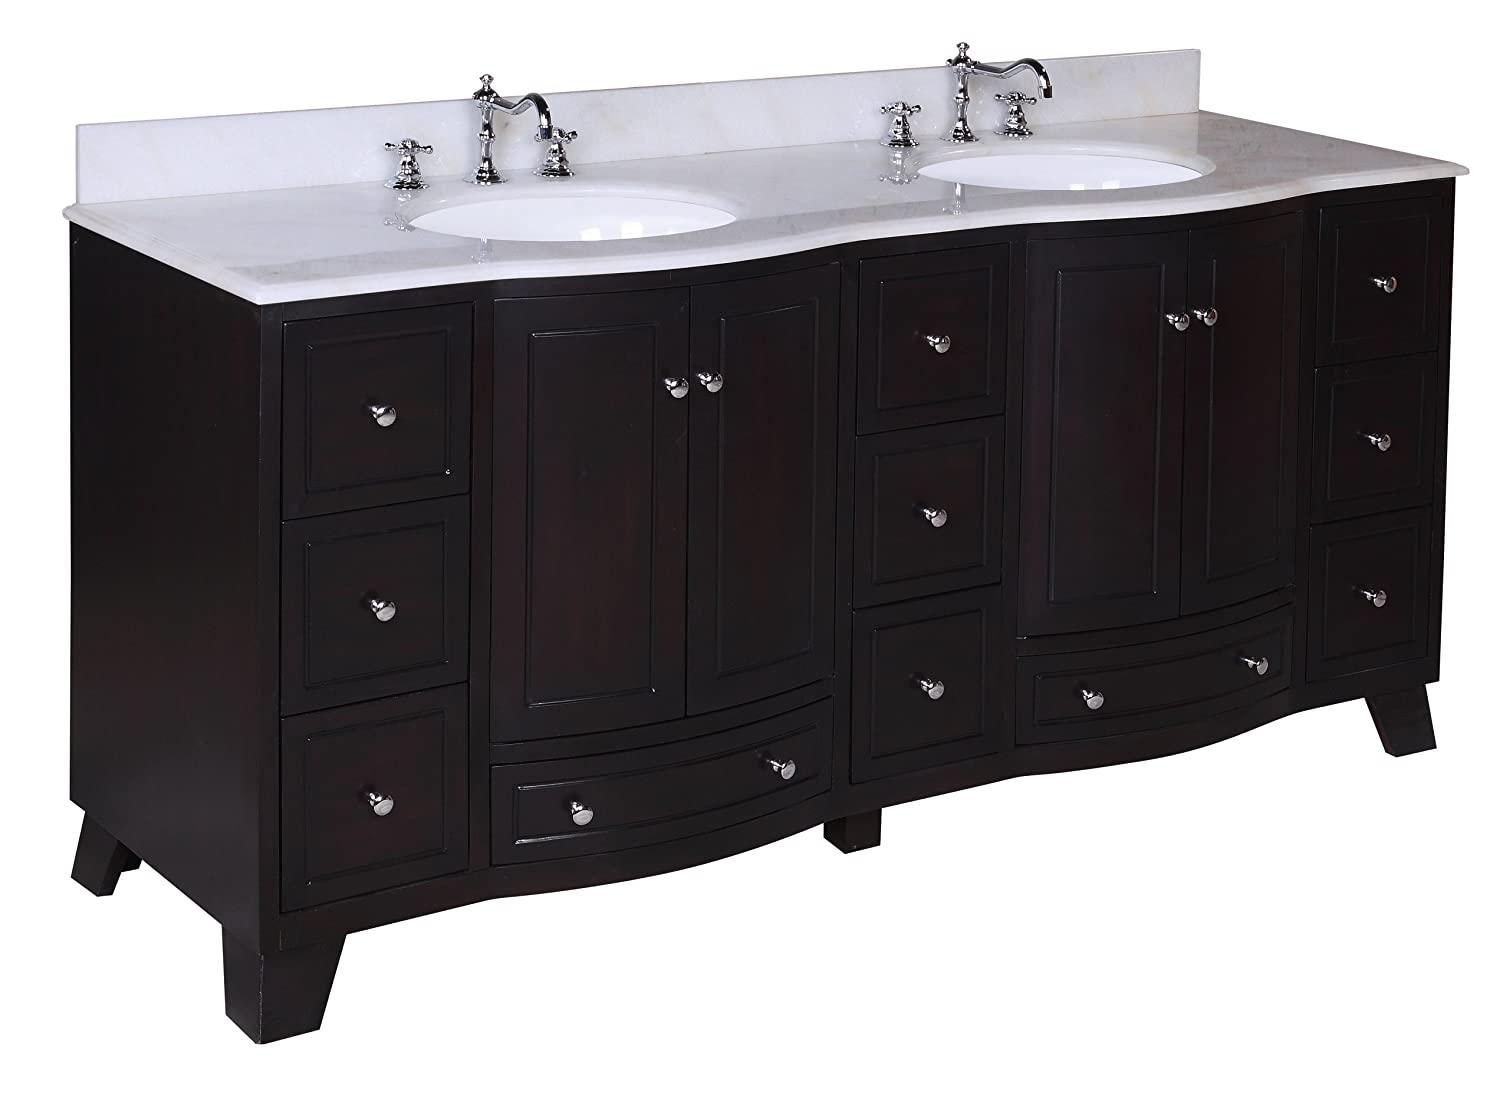 kitchen bath collection palazzo bathroom vanity with marble countertop cabinet with soft close function and undermount ceramic sink